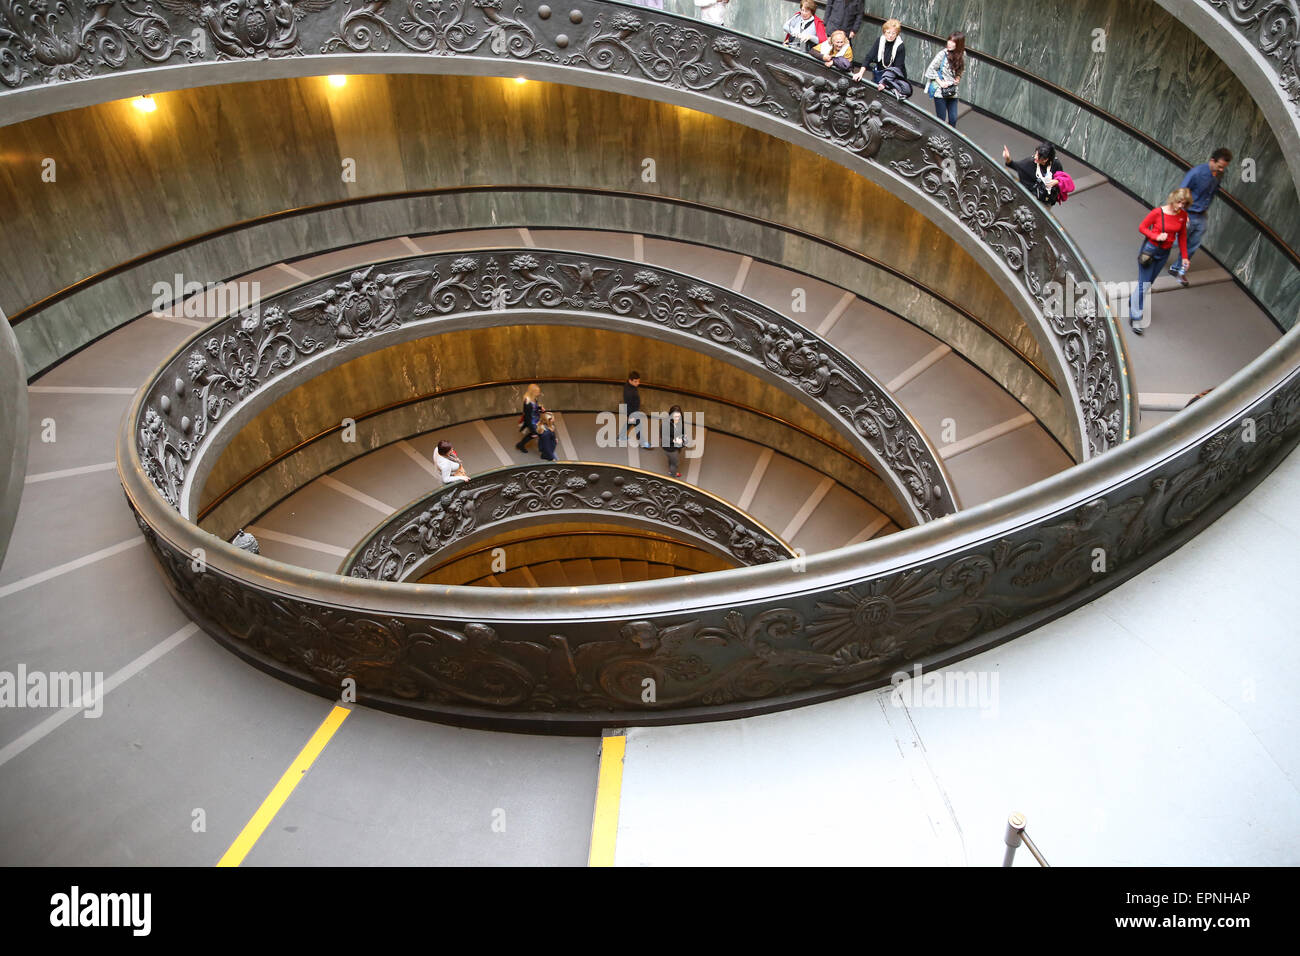 Bramante Staircase. Vatican Museums. Designed by Giuseppe Momo, 1932, inspired by spiral staircase designed by Bramante - Stock Image